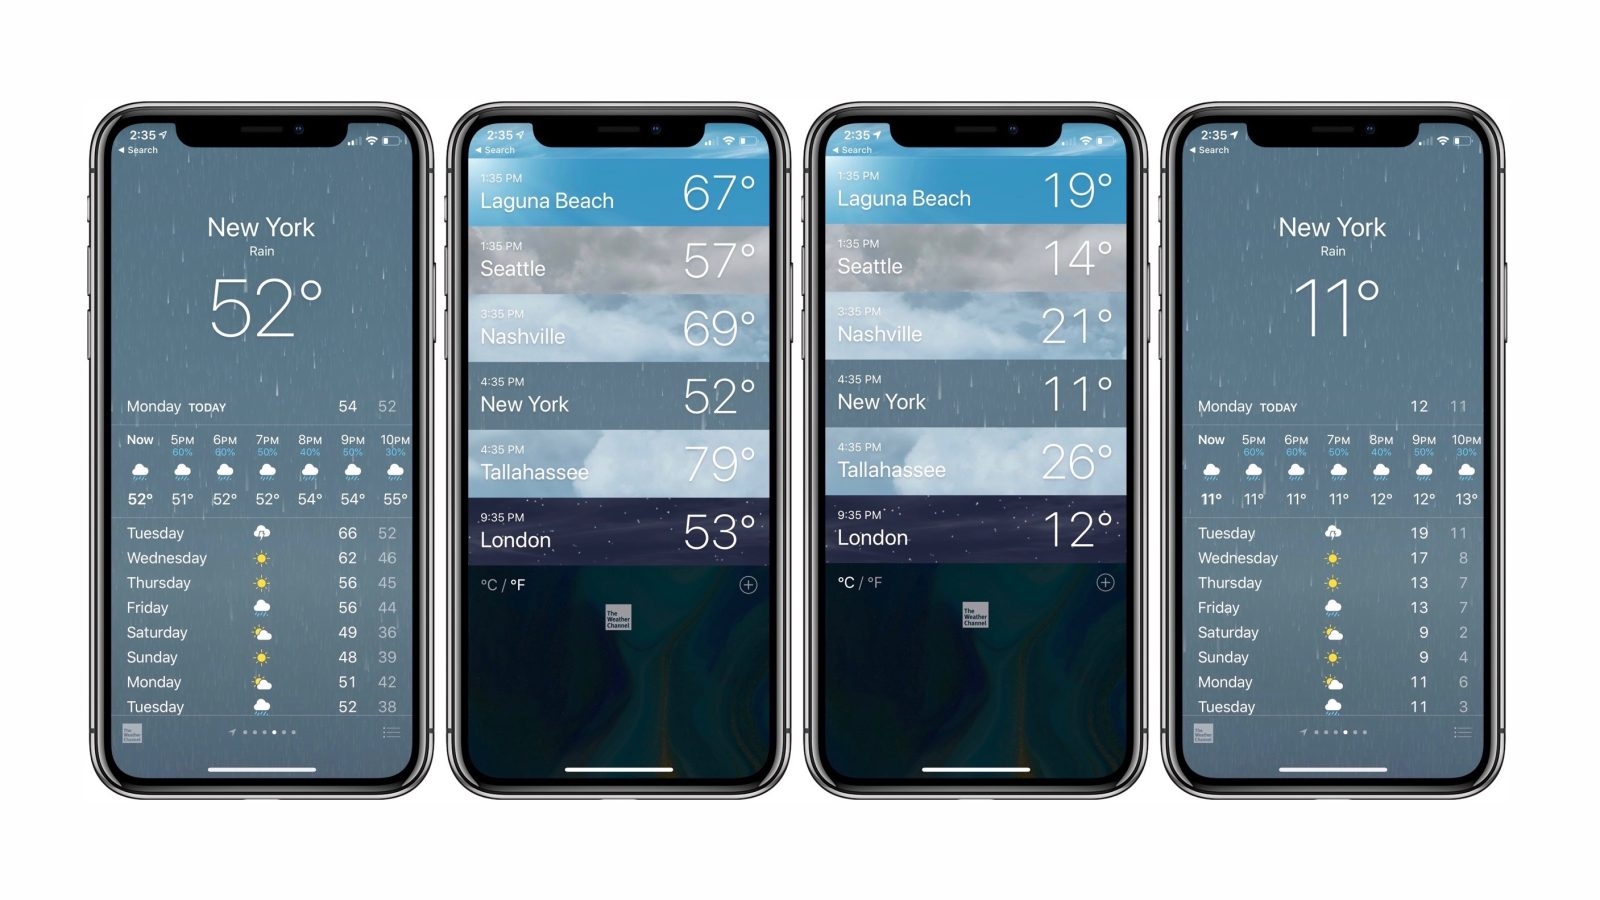 How To Change Between Fahrenheit And Celsius On IPhone